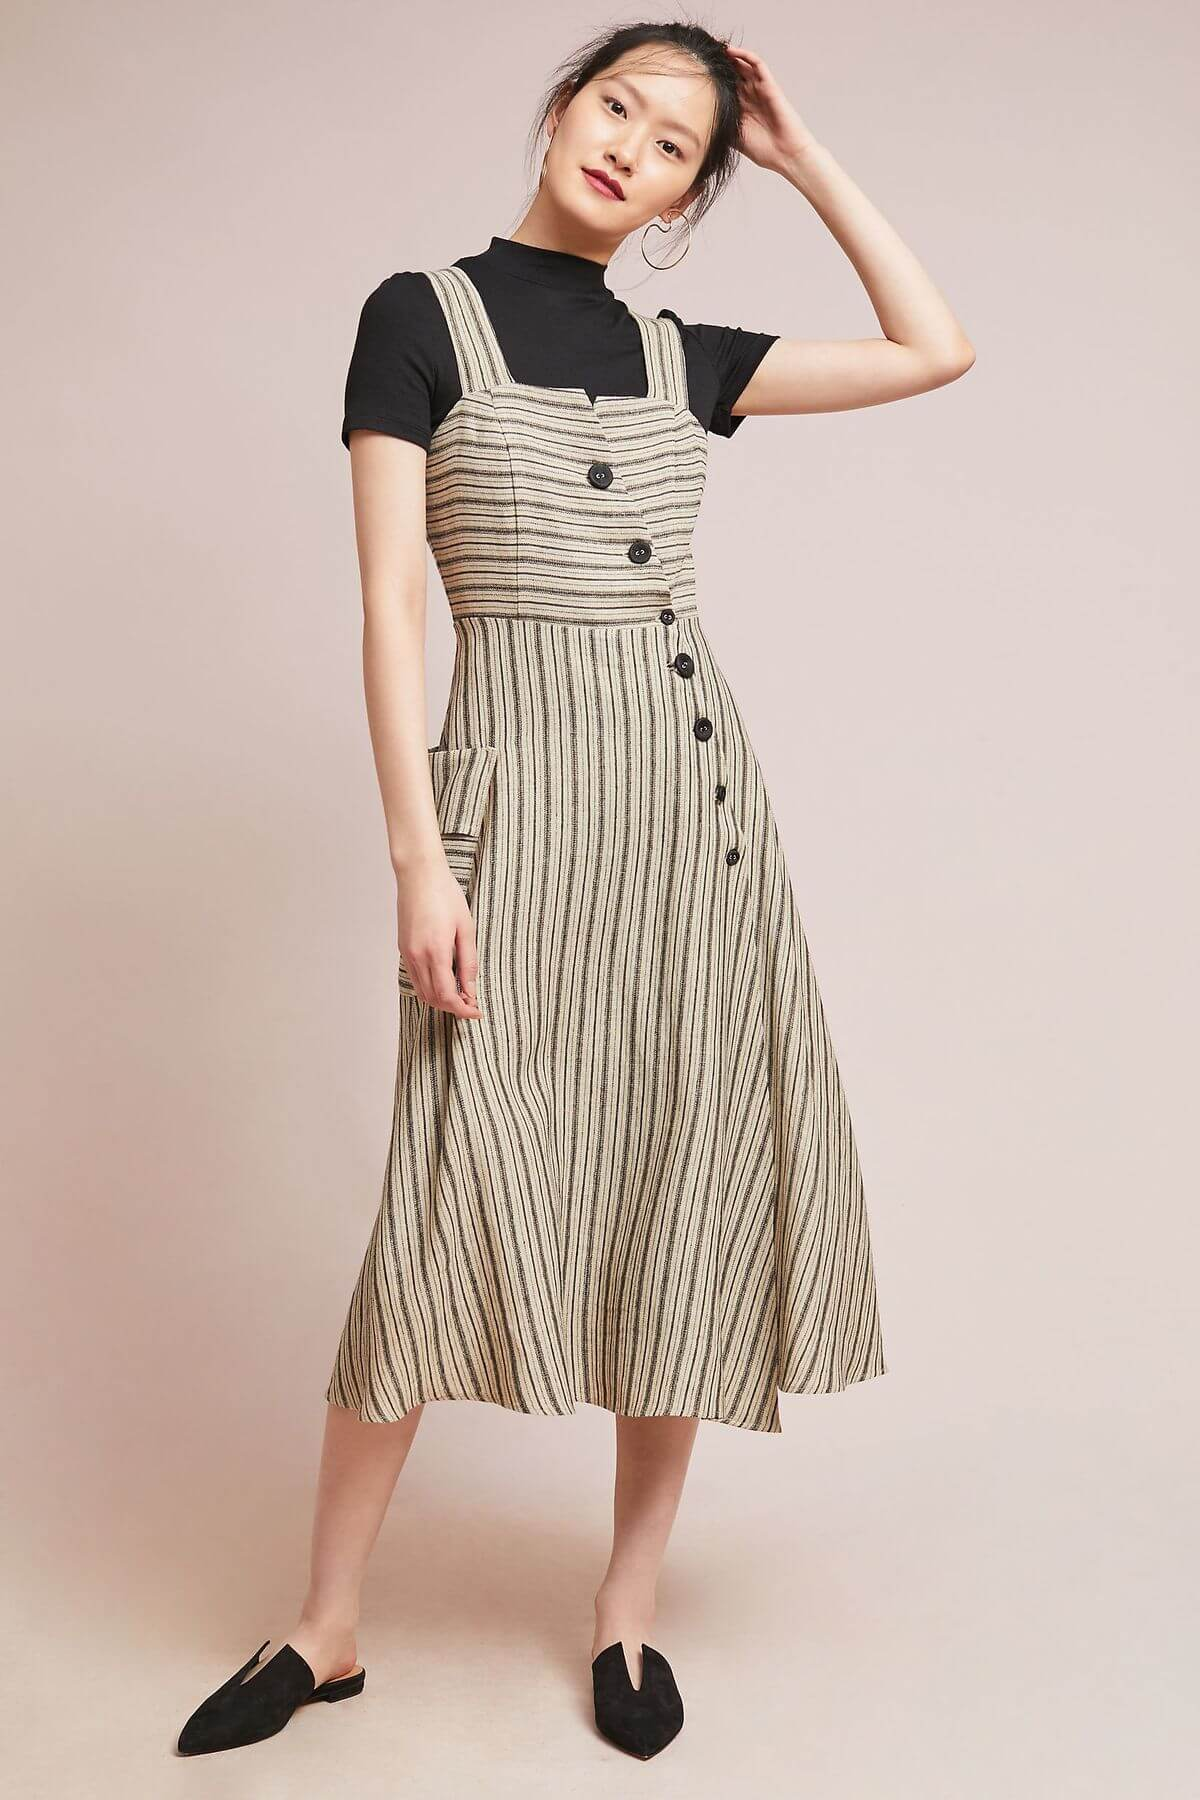 Eva Franco Dress Striped Utility Midi Dress